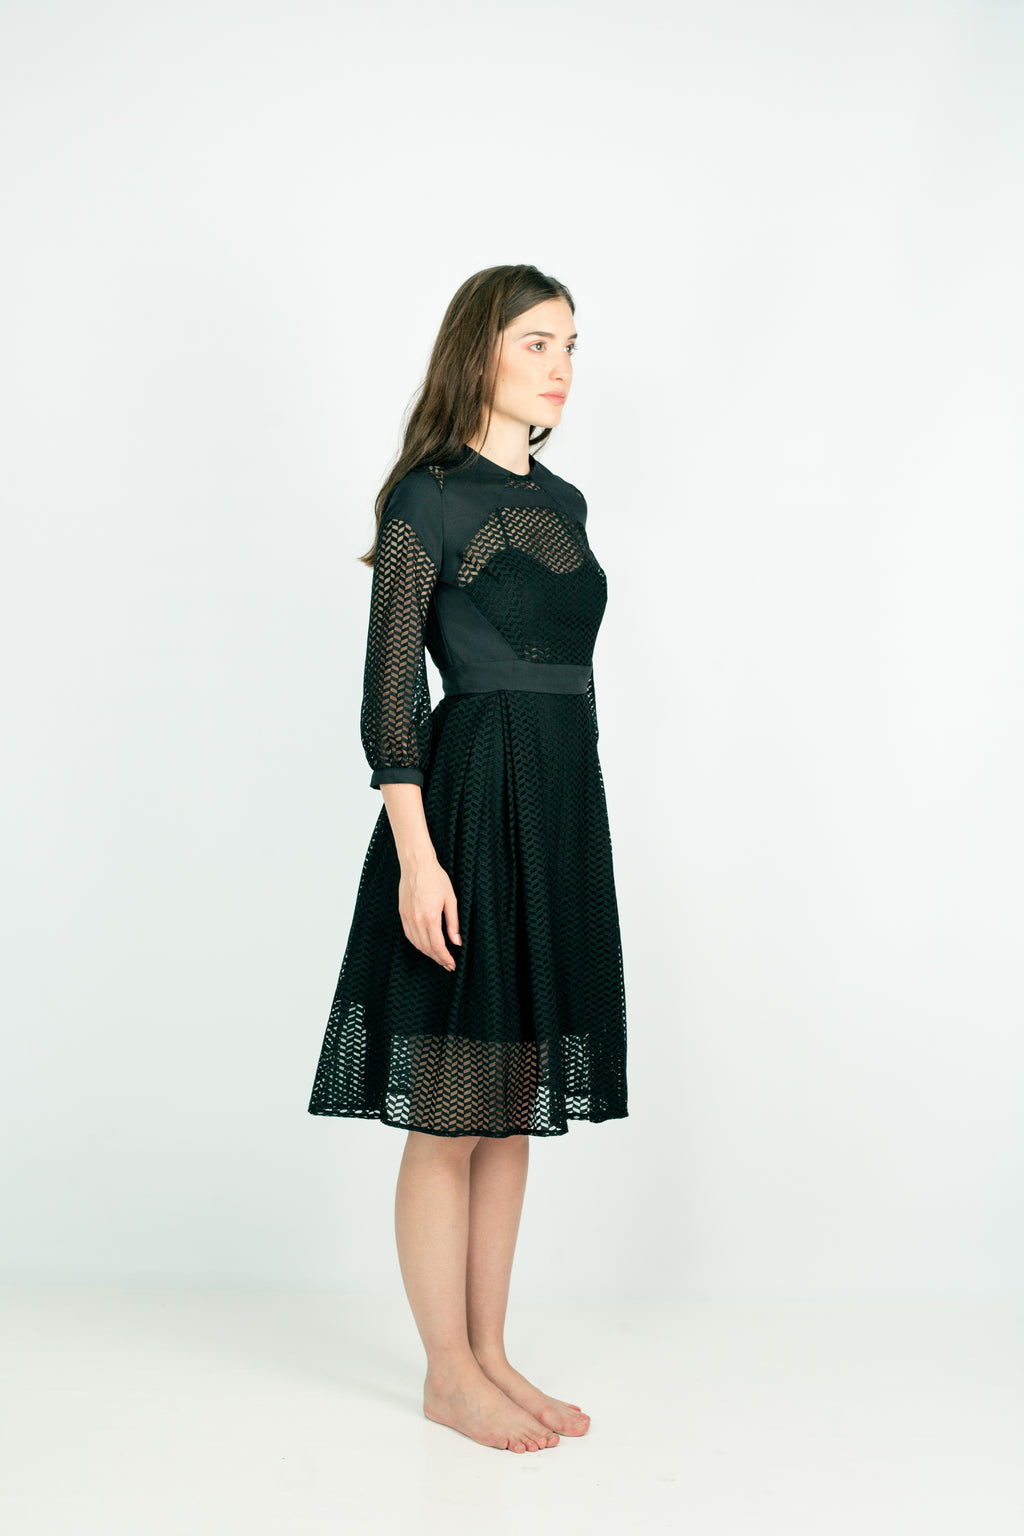 EON PARIS Pele Mesh Dress in Black